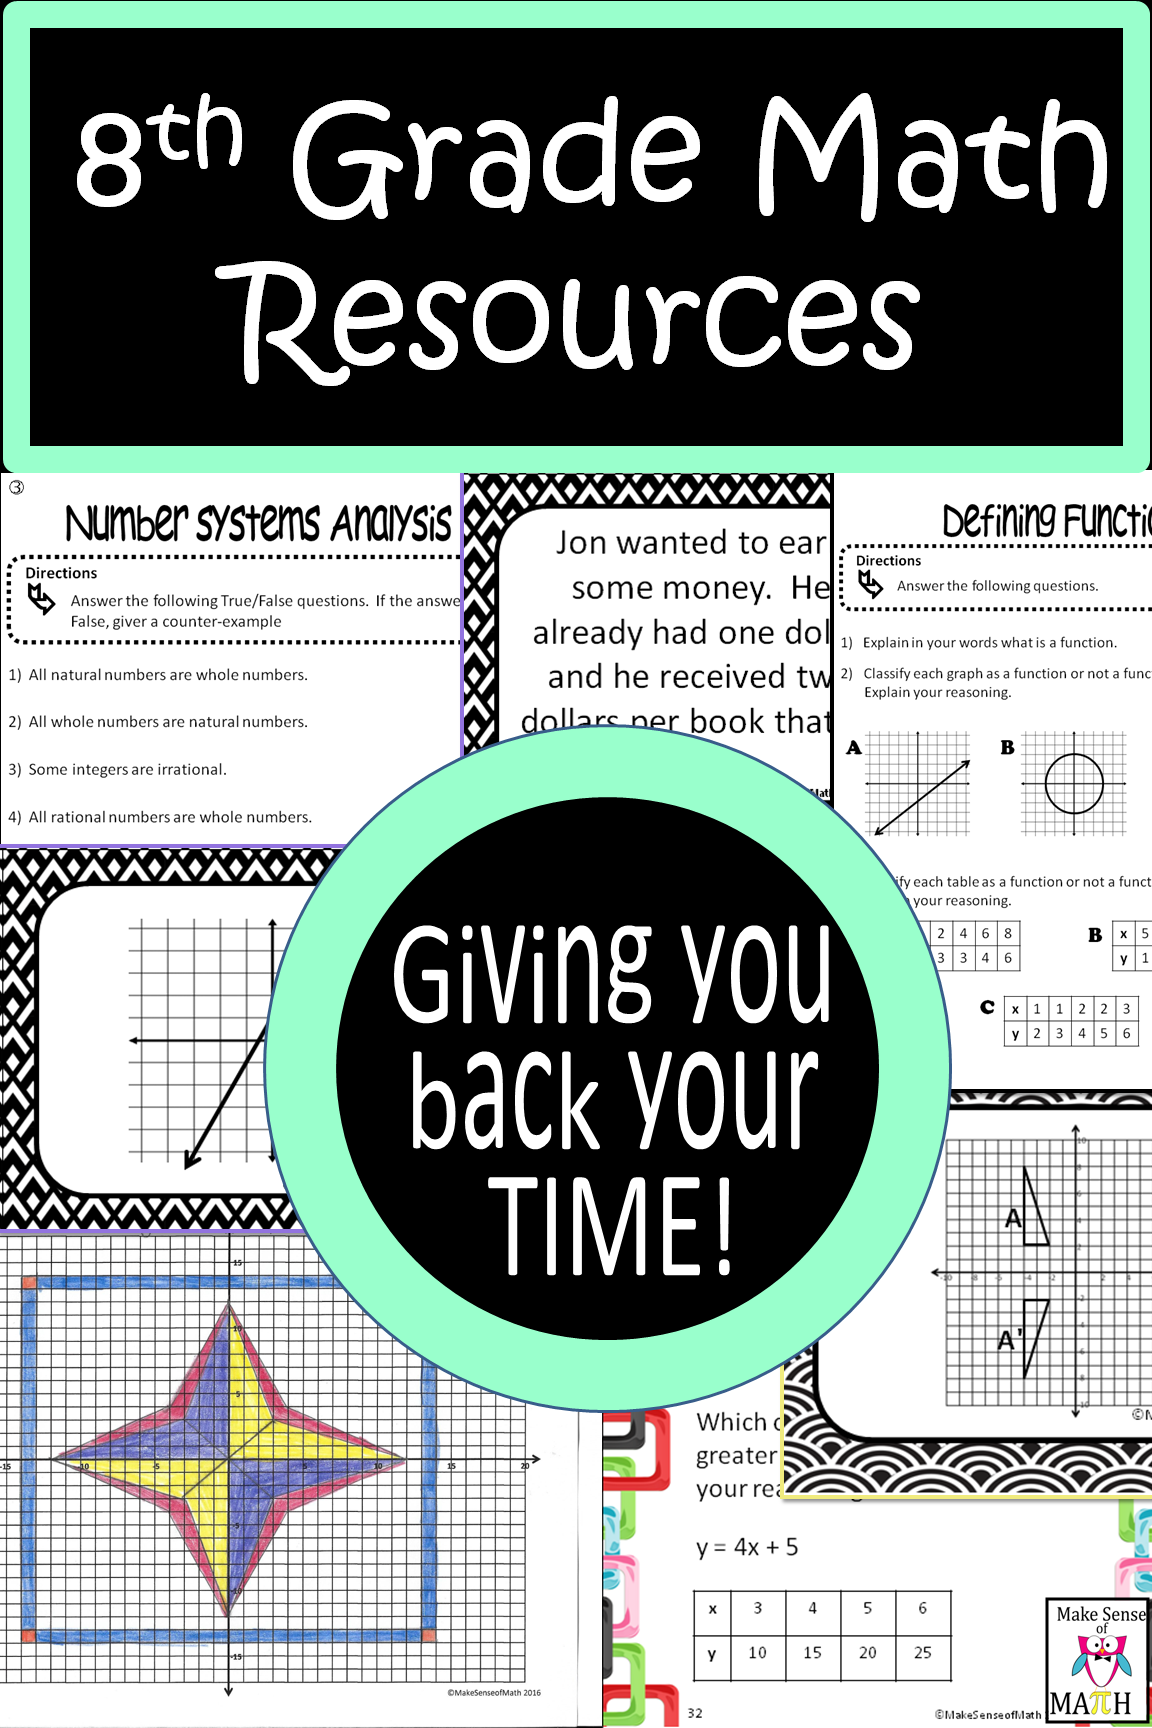 Check Out These 8th Grade Math Resources For Your